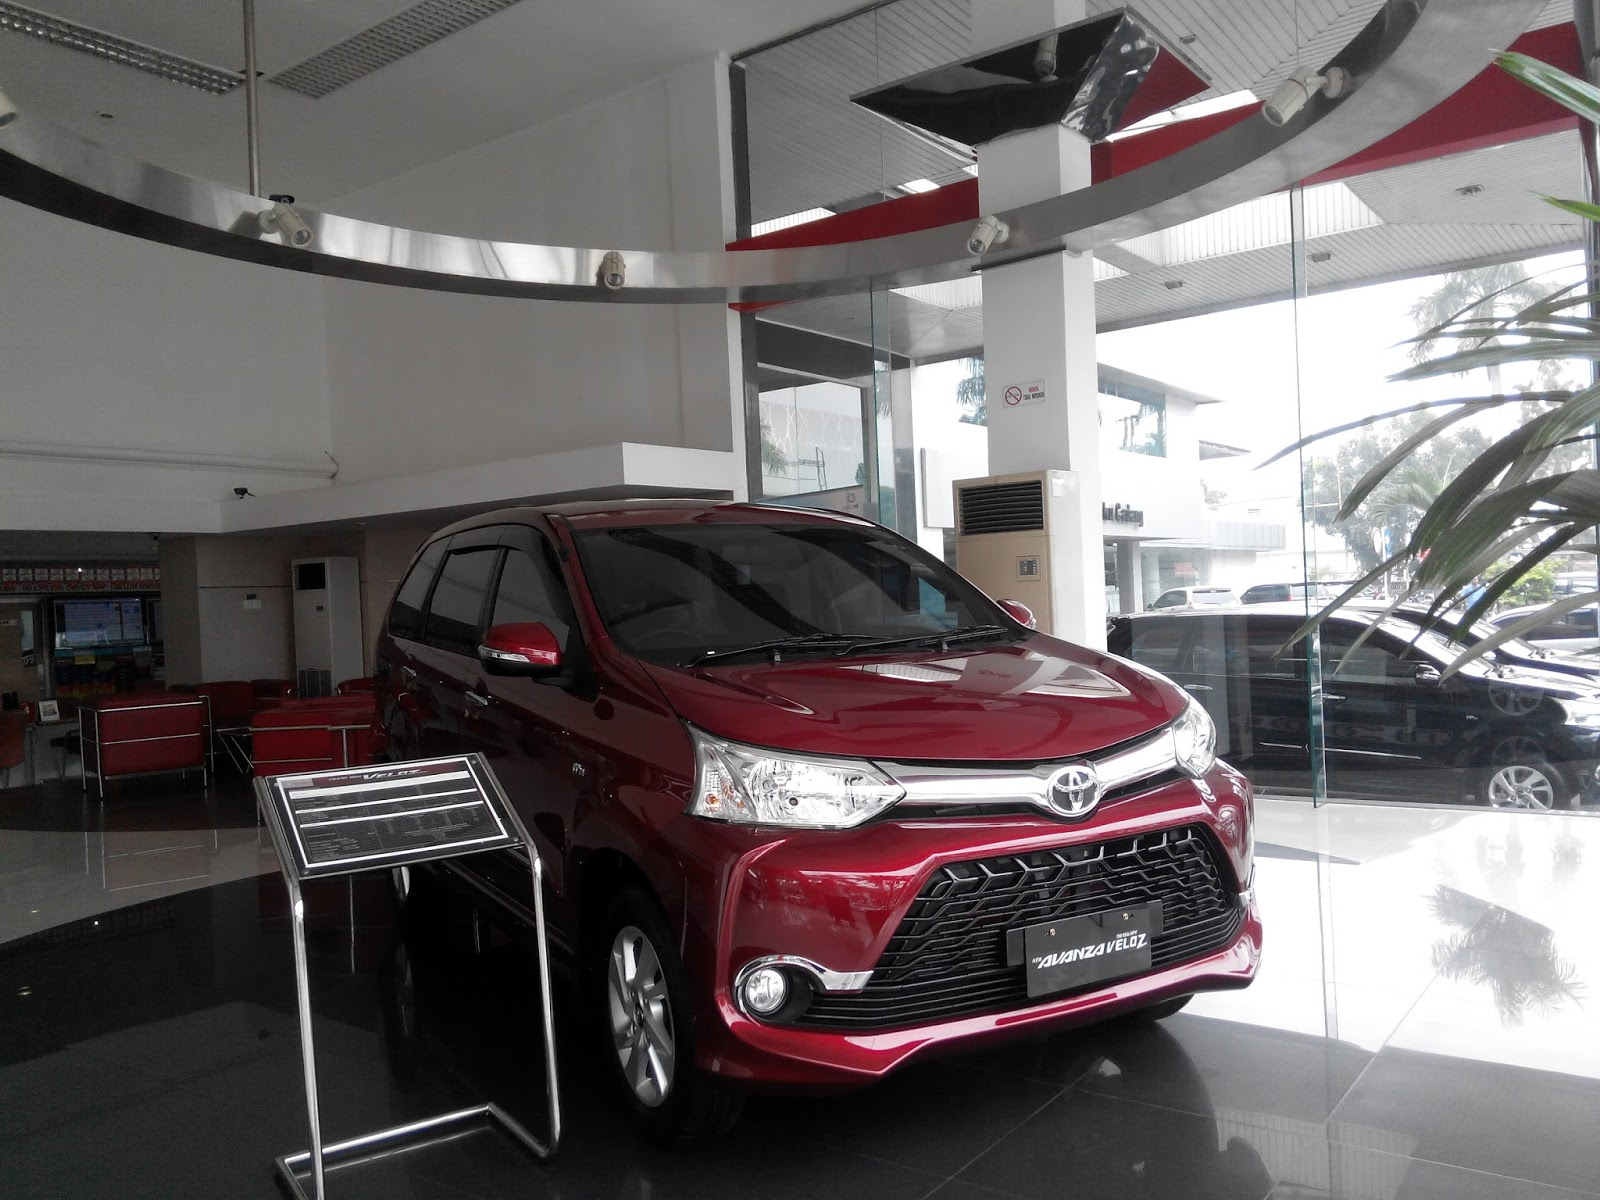 grand new veloz review fitur keamanan avanza we can t trust anyone but believe in and